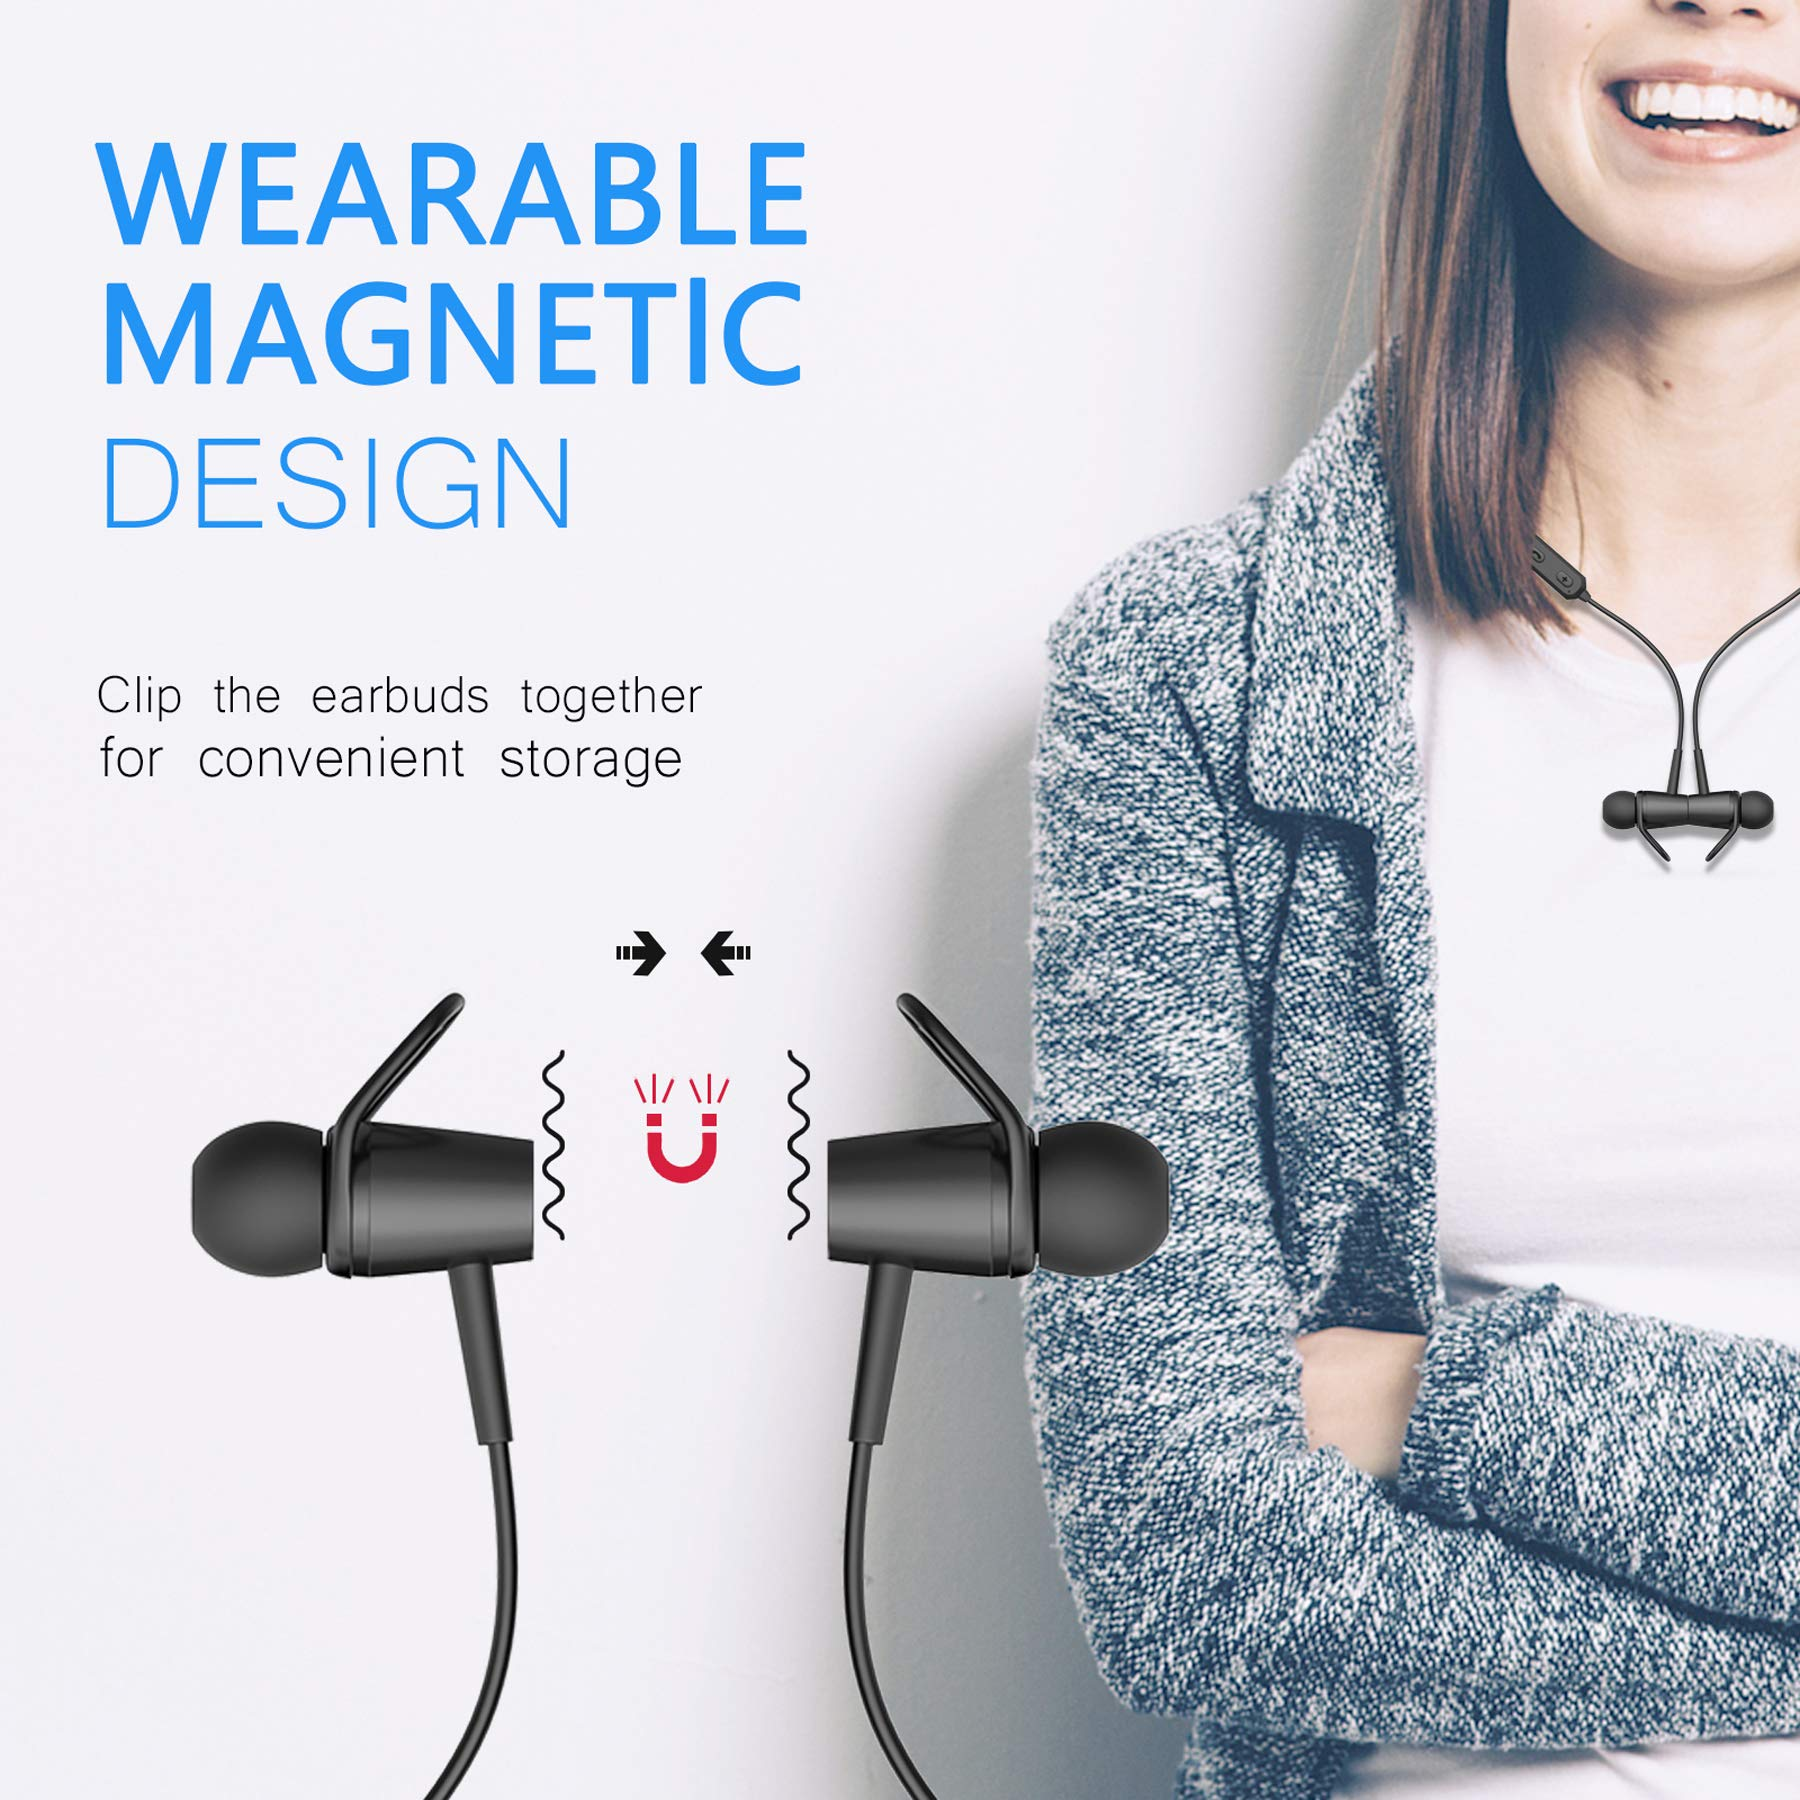 Bluetooth Earphones, Bluetooth 4.2 Magnetic Earphones, in-Ear Sweatproof Headphones with Mic for Running Gym Workout by BOQXIN (Image #2)